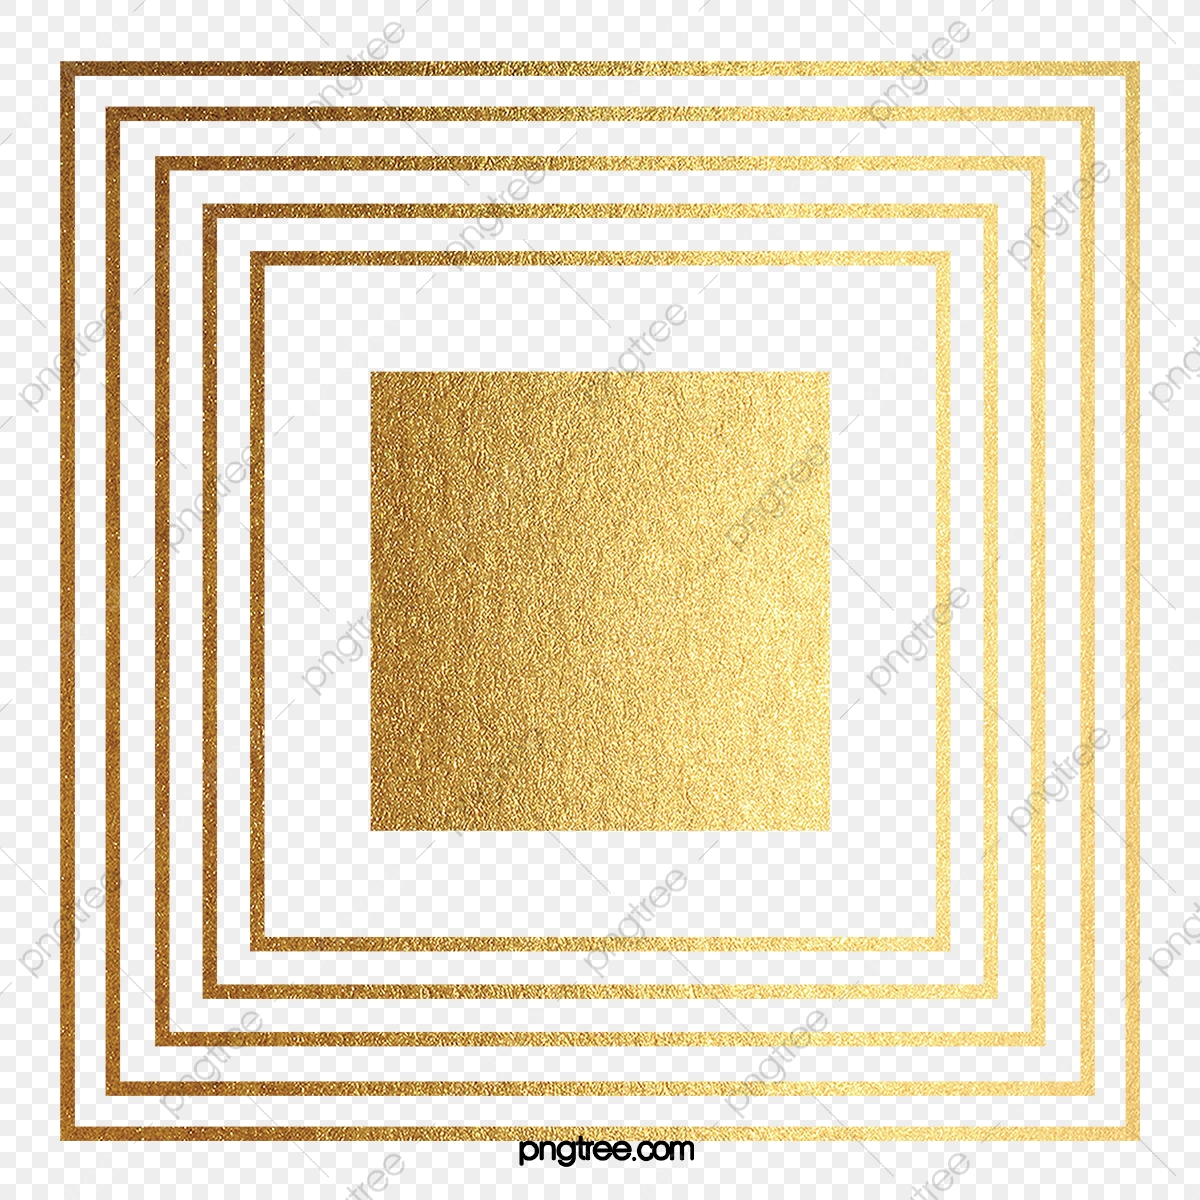 Golden Square, Gold Texture, Geometry, Square PNG Transparent.